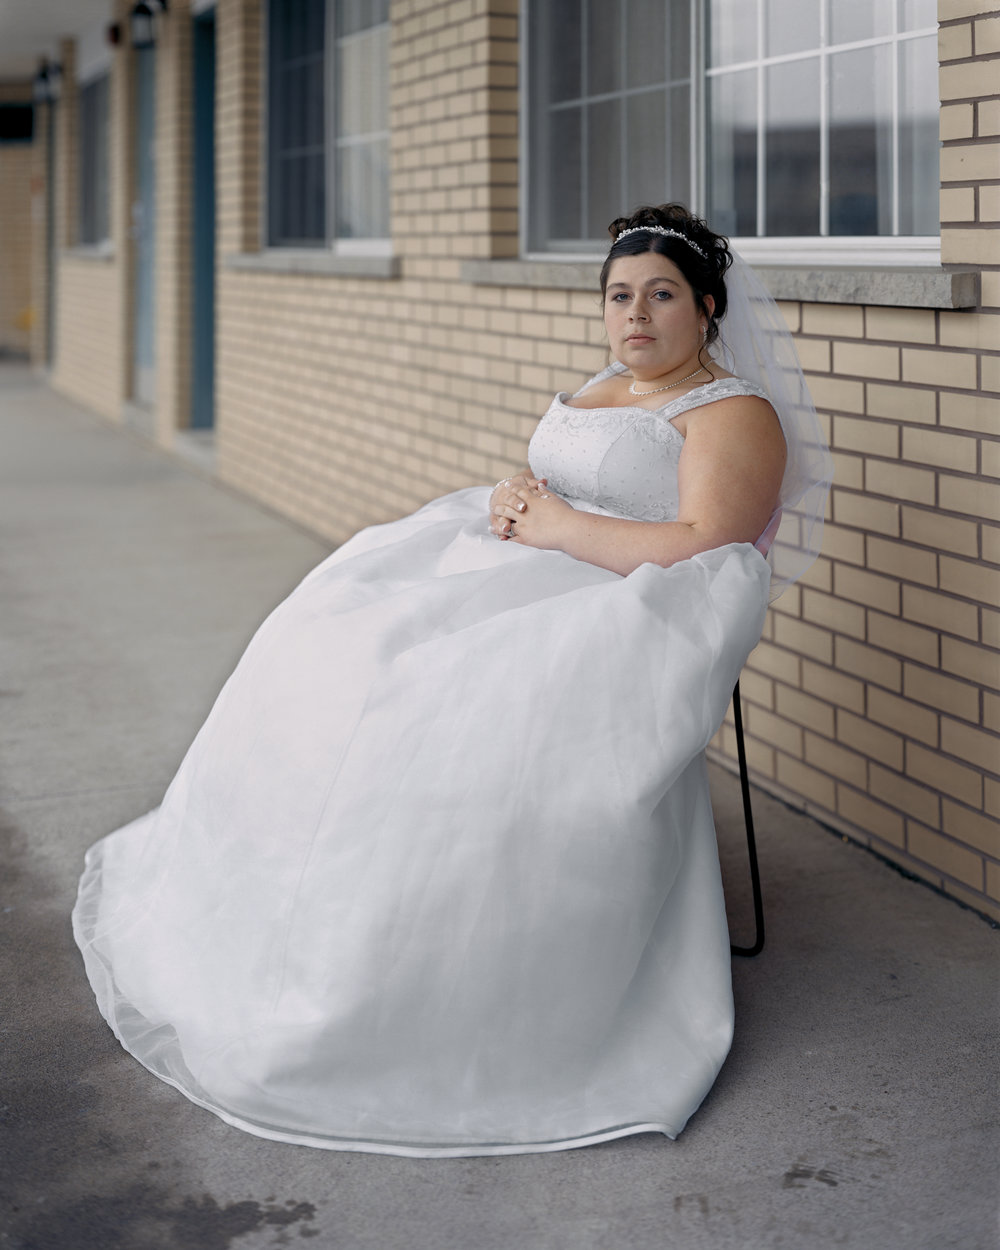 Alec Soth,  Melissa , 2005.Courtesy the artist and Sean Kelly Gallery.